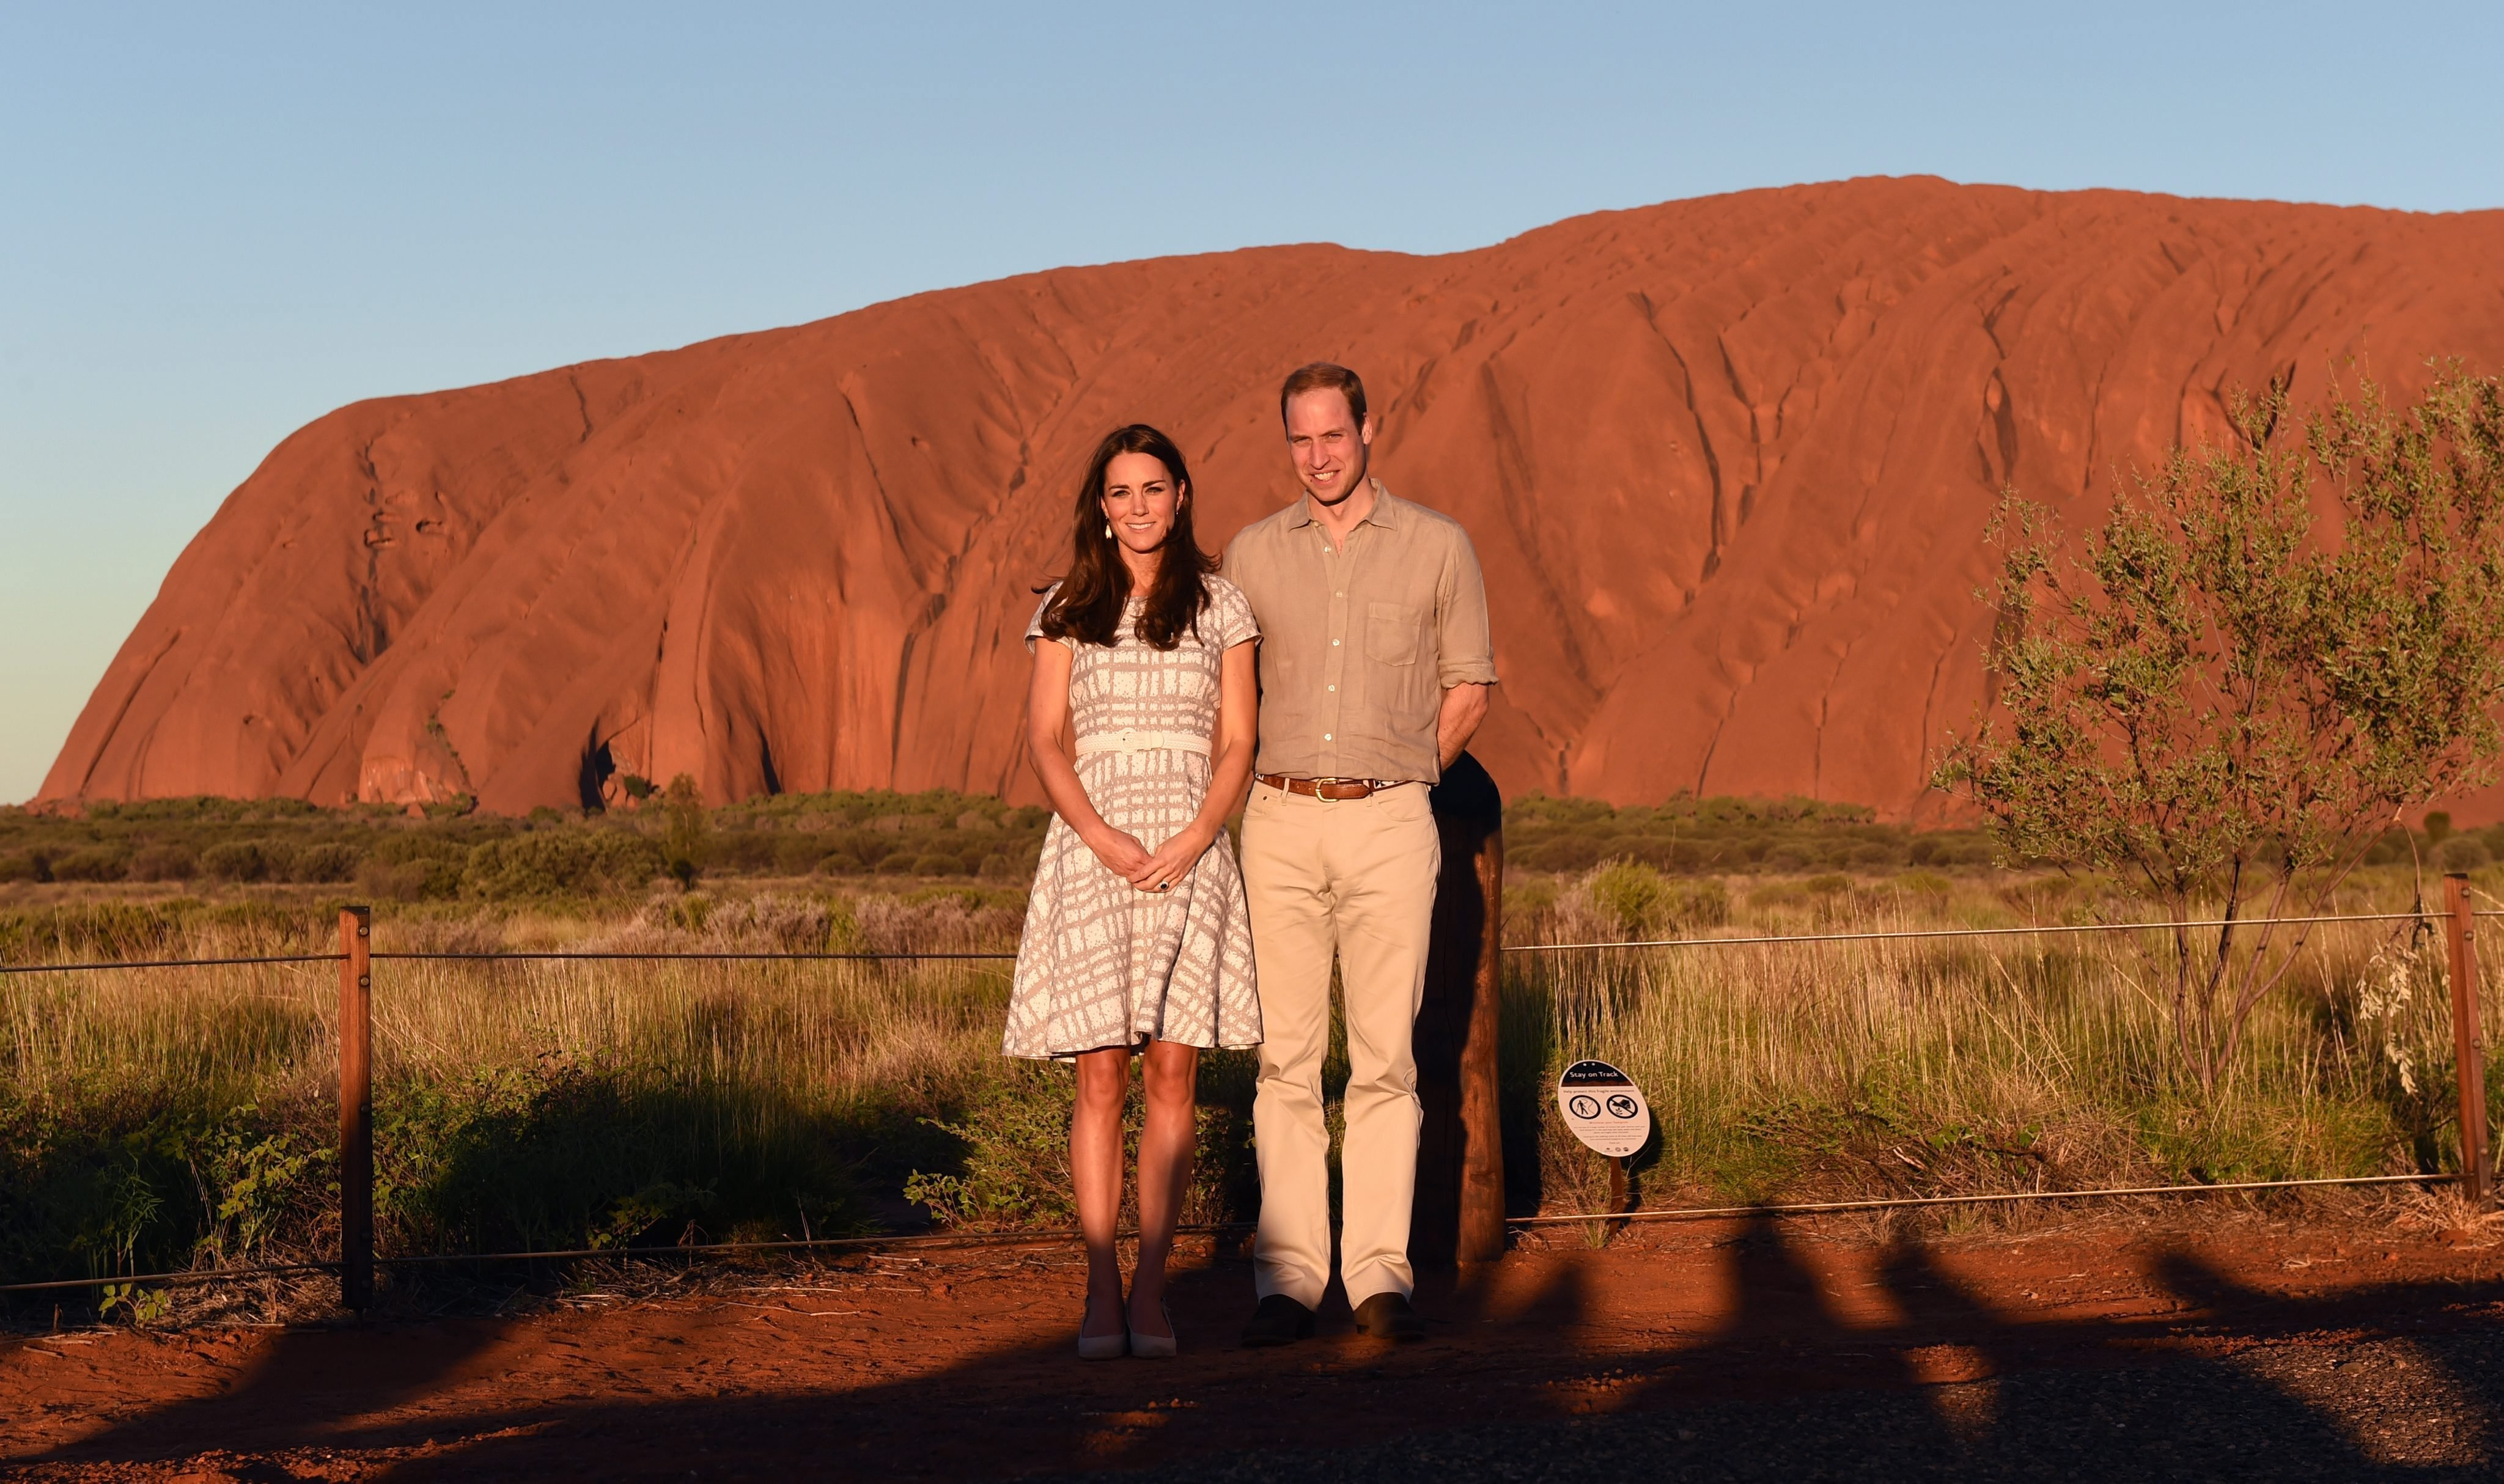 <strong>Kate and Hobbs</strong>From right: Prince William, Duke of Cambridge and his wife Catherine, Duchess of Cambridge stand in front of Uluru in the Northern Territory, Australia, April 22, 2014.